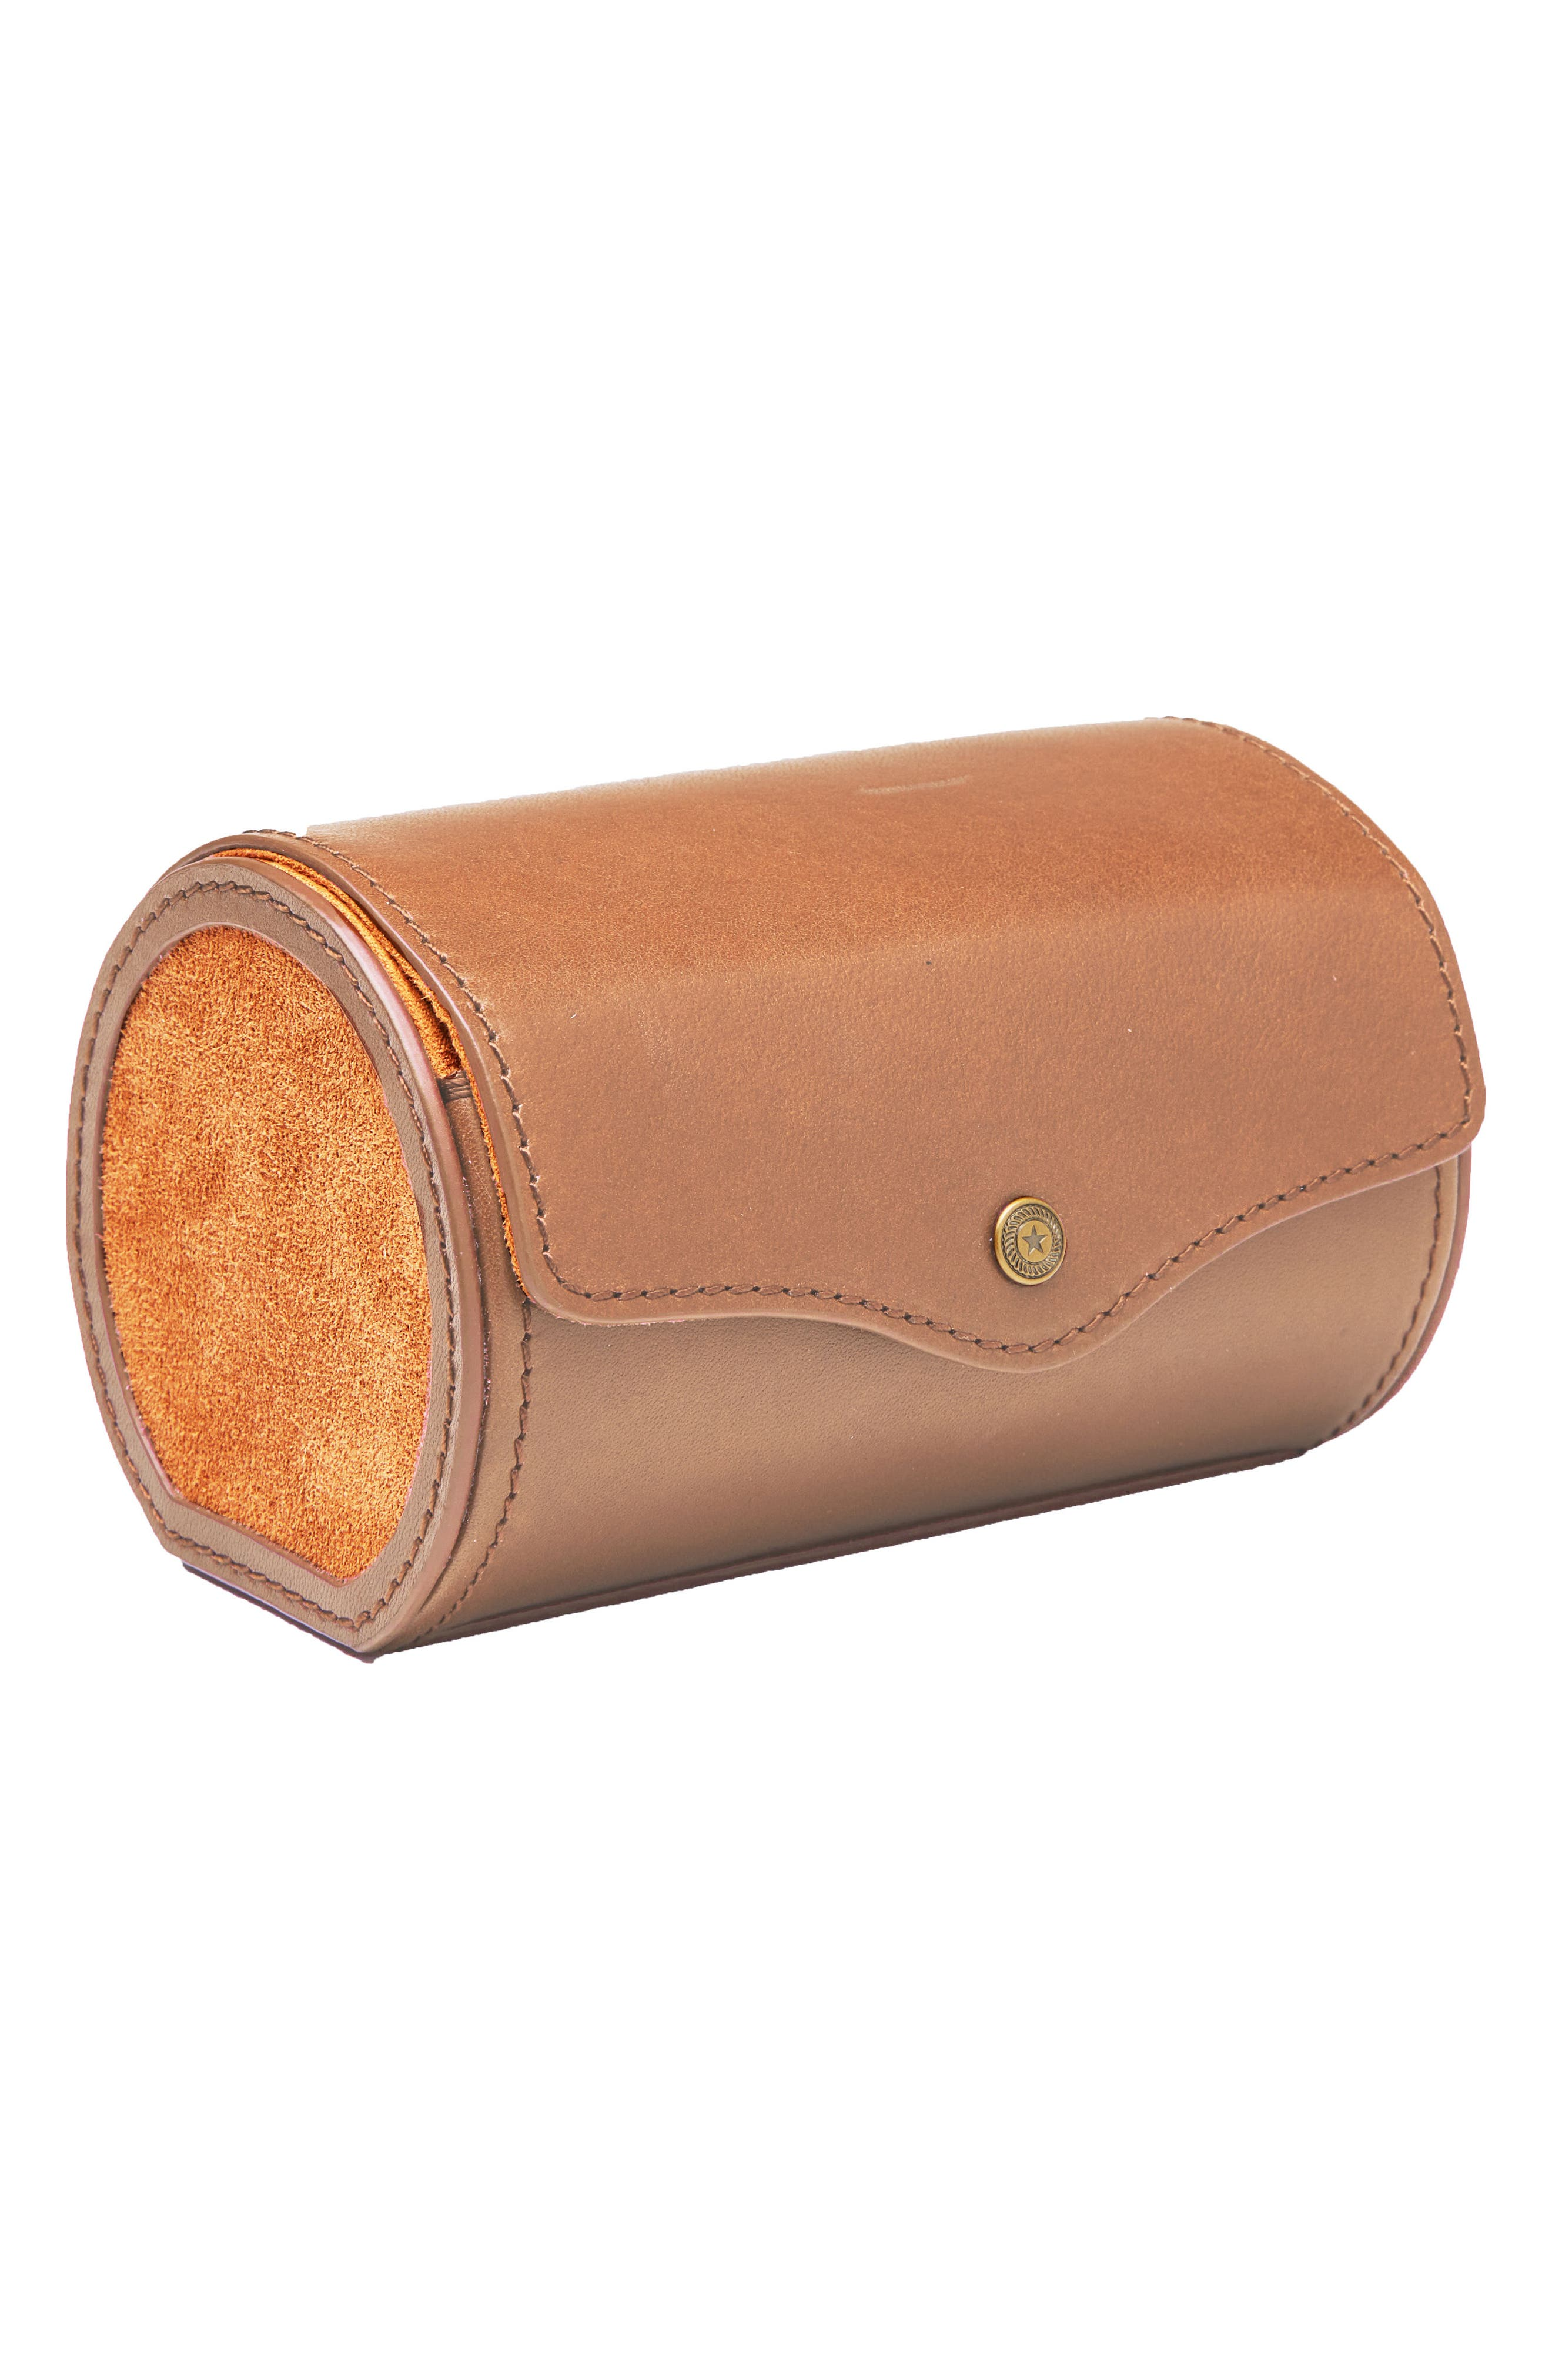 Watch Roll Case,                             Alternate thumbnail 3, color,                             Tan